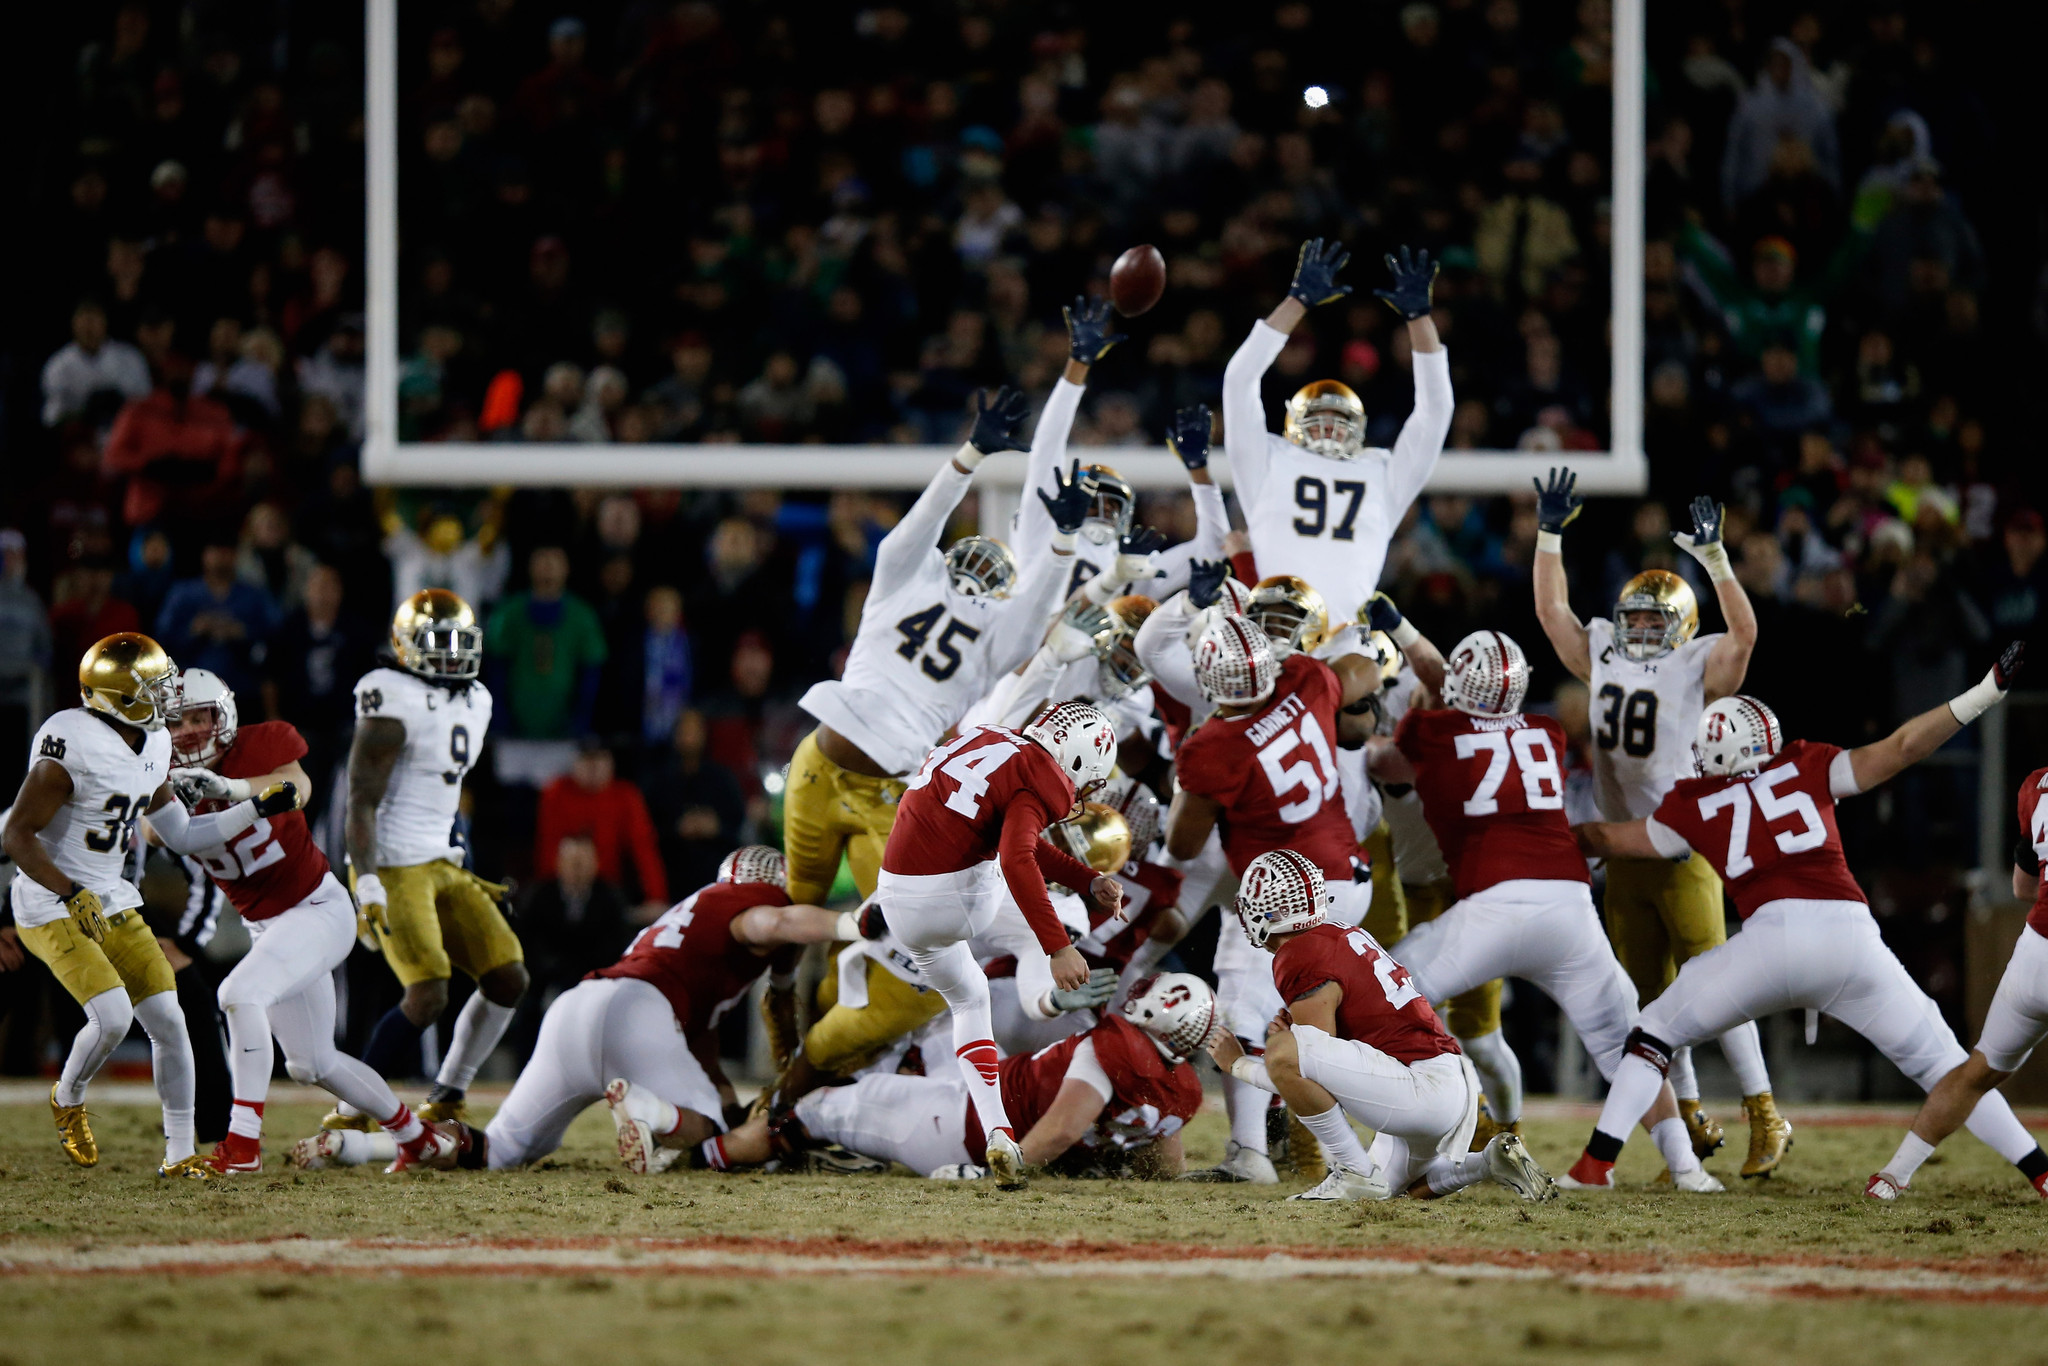 Notre Dame's Season Comes to an End